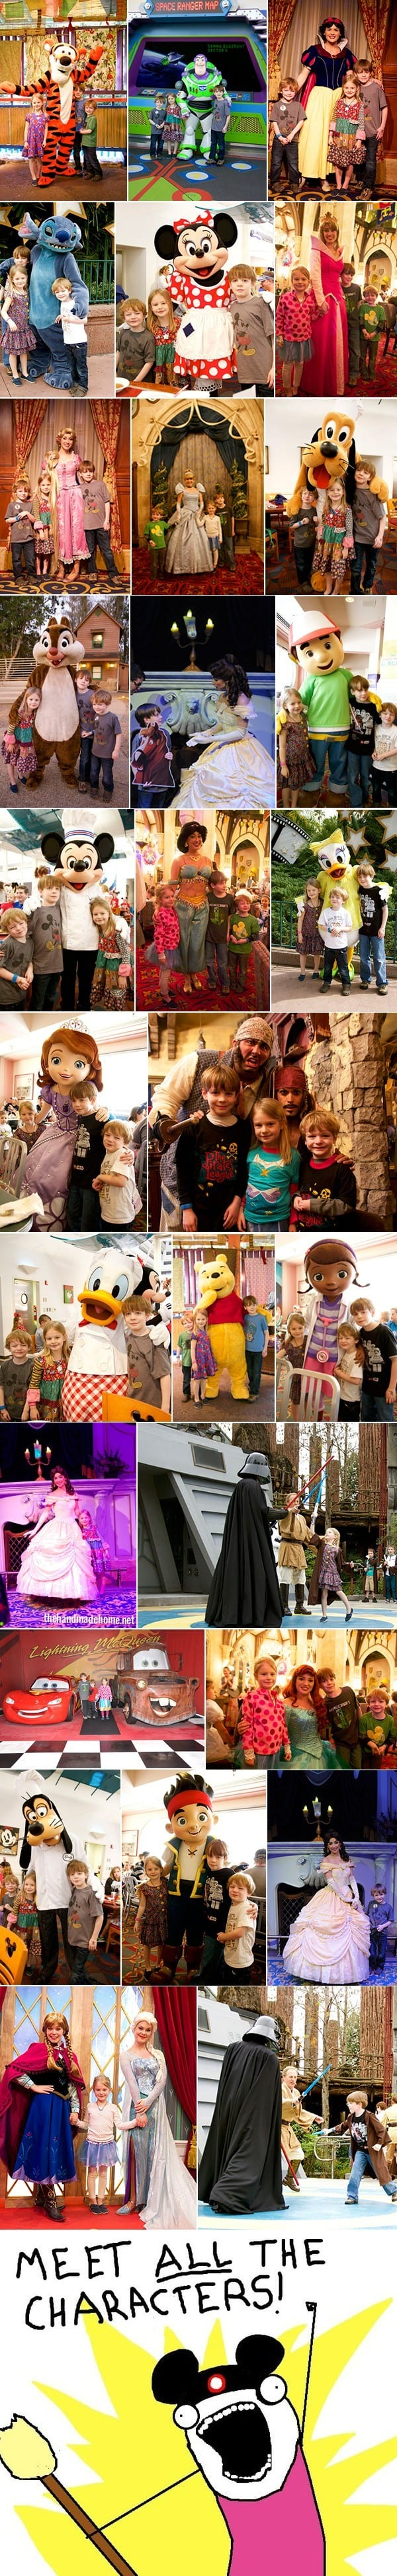 meet_walt_disney_world_characters